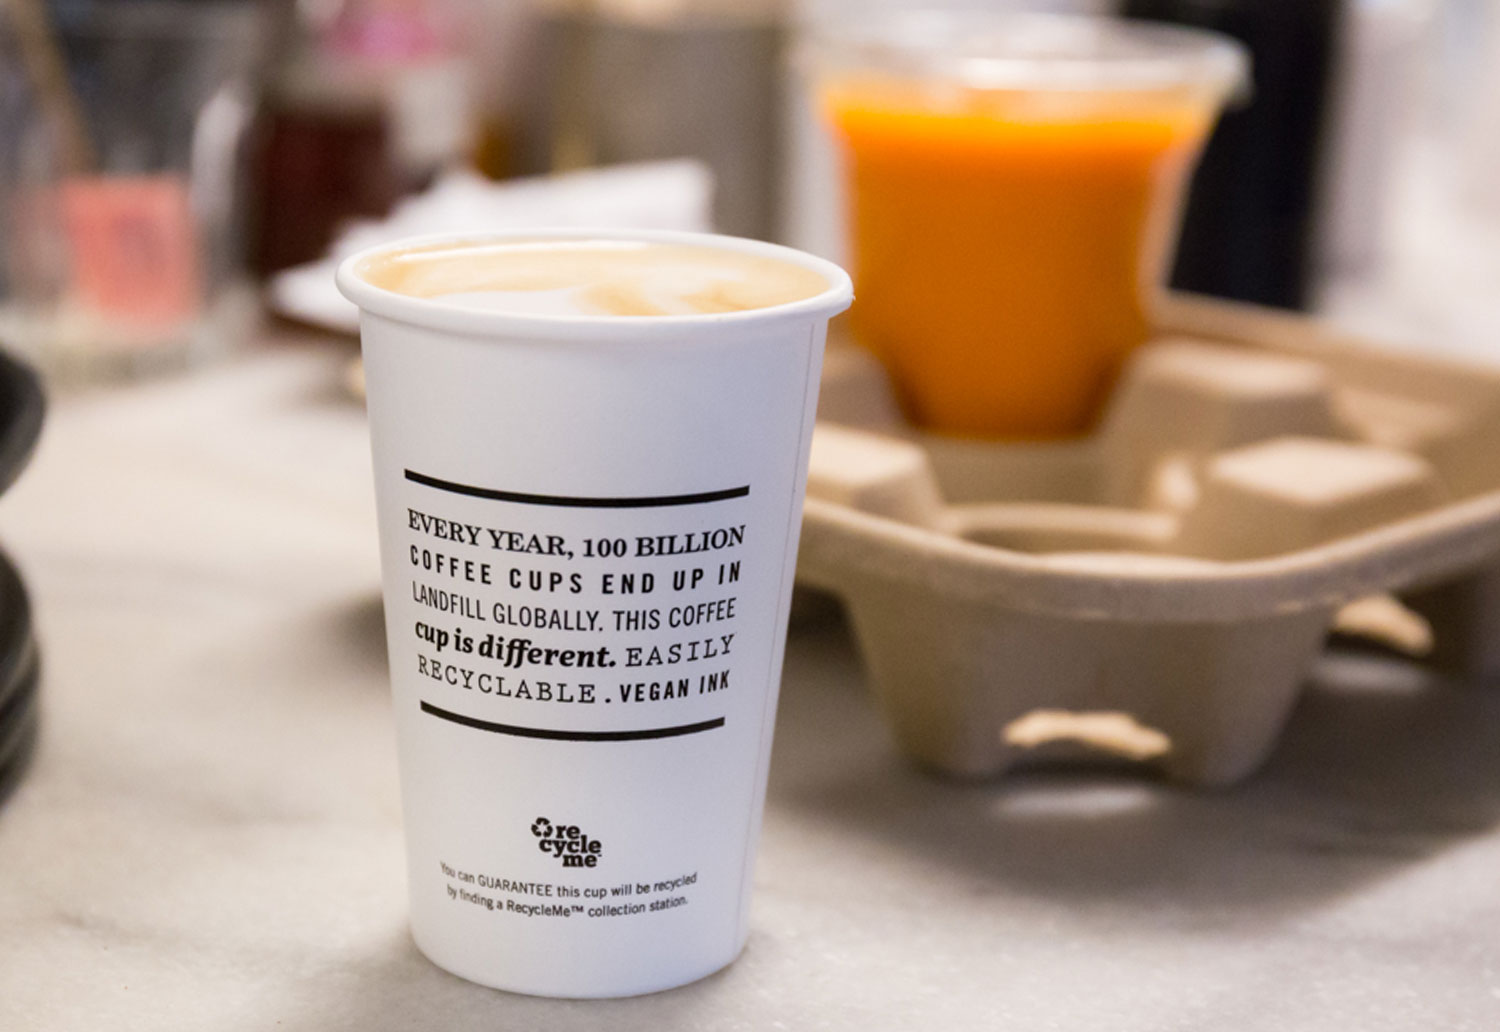 Image of a Detpak RecycleMe cup for takeaway coffee